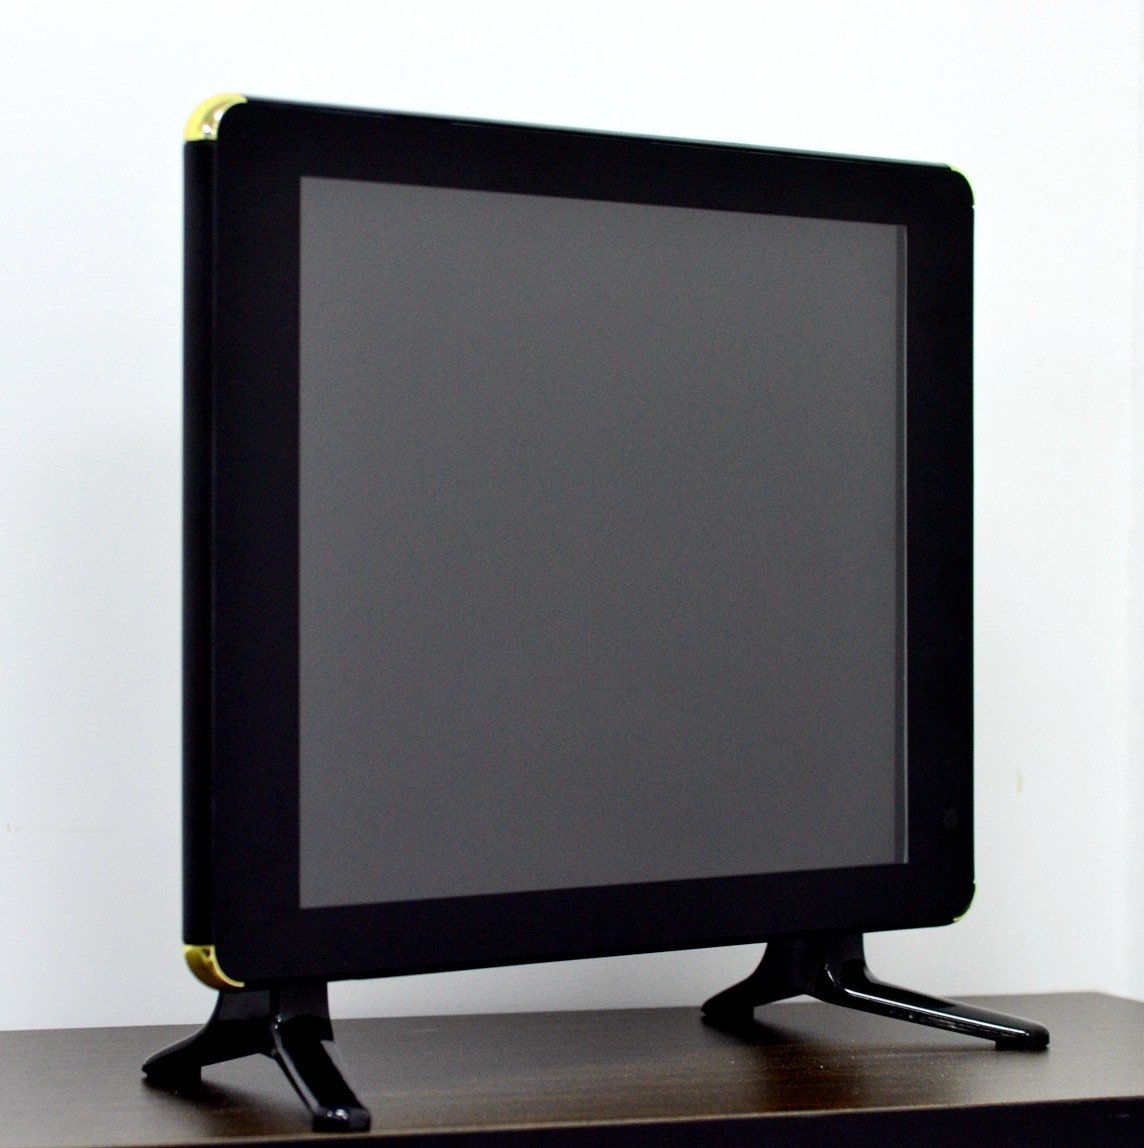 Xinyao LCD 17 flat screen tv new style for lcd tv screen-3